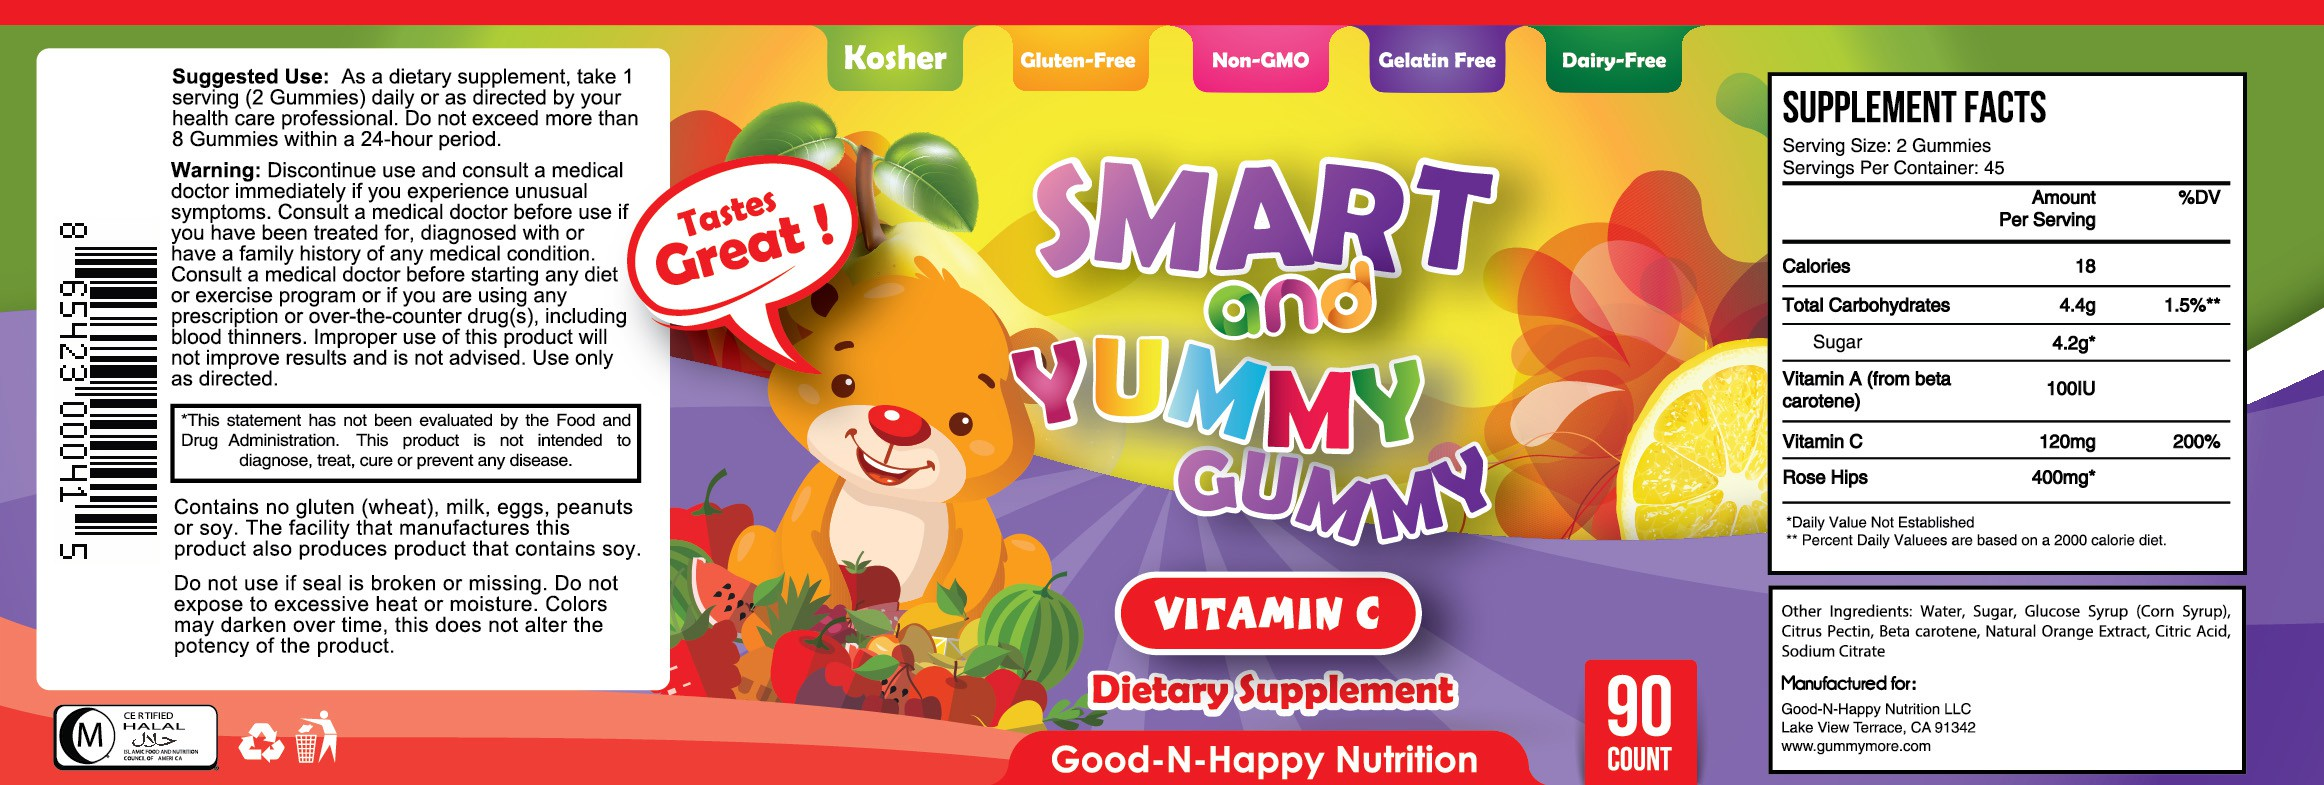 Smart and Yummy Gummy Kids Vitamin C Gummy